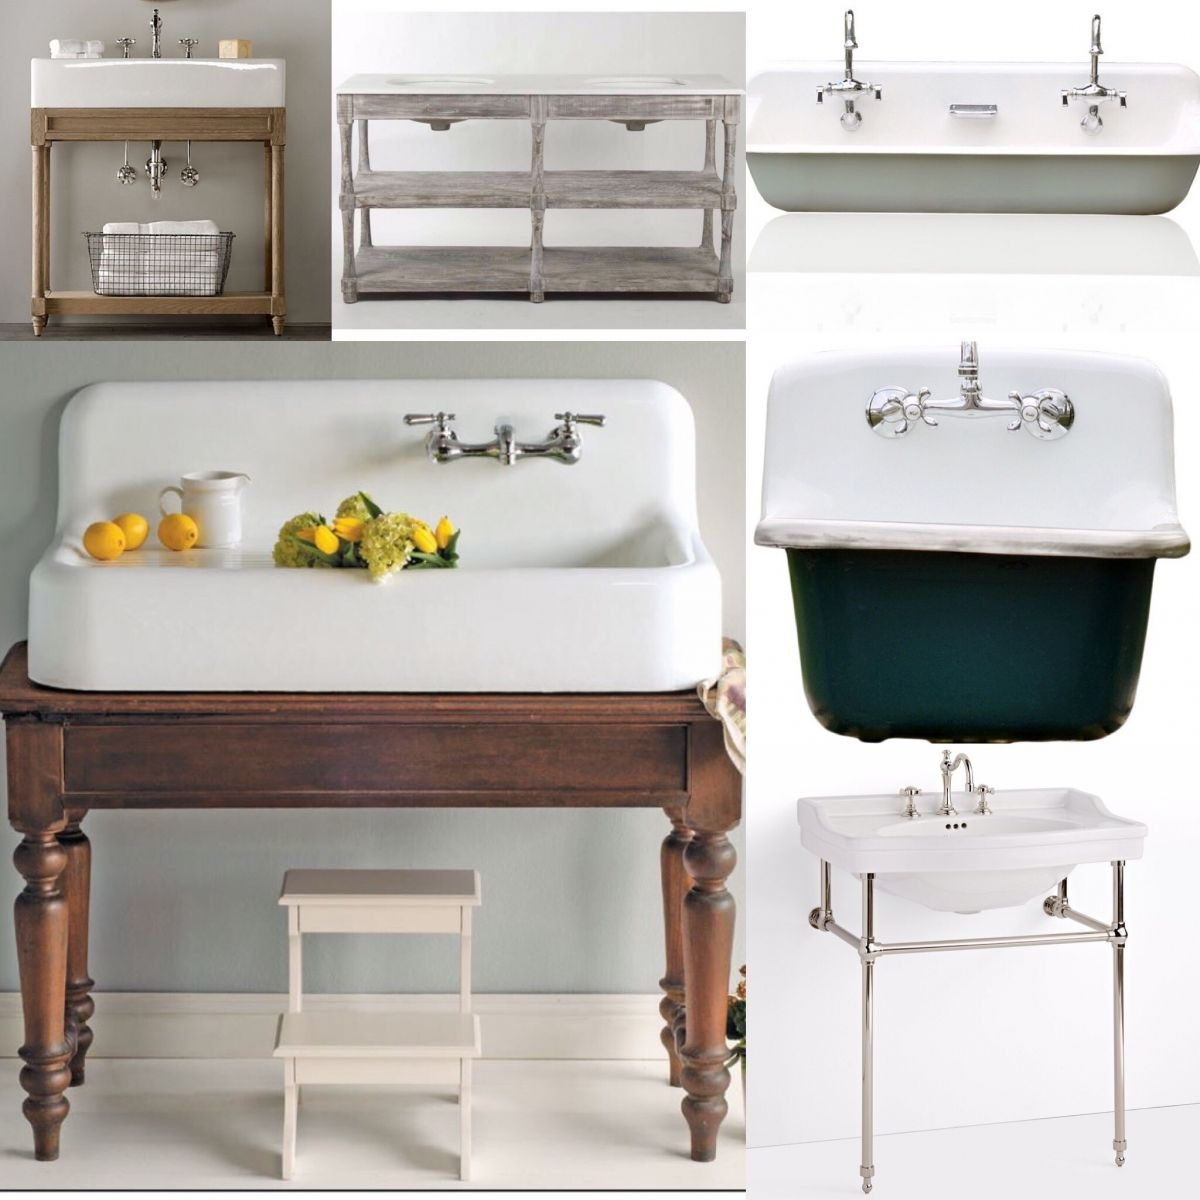 If You Re Building A Farmhouse Or Looking To Remodel A Bathroom Here Are Some F Farmhouse Style Bathroom Vanity Farmhouse Sink Vanity Bathroom Farmhouse Style